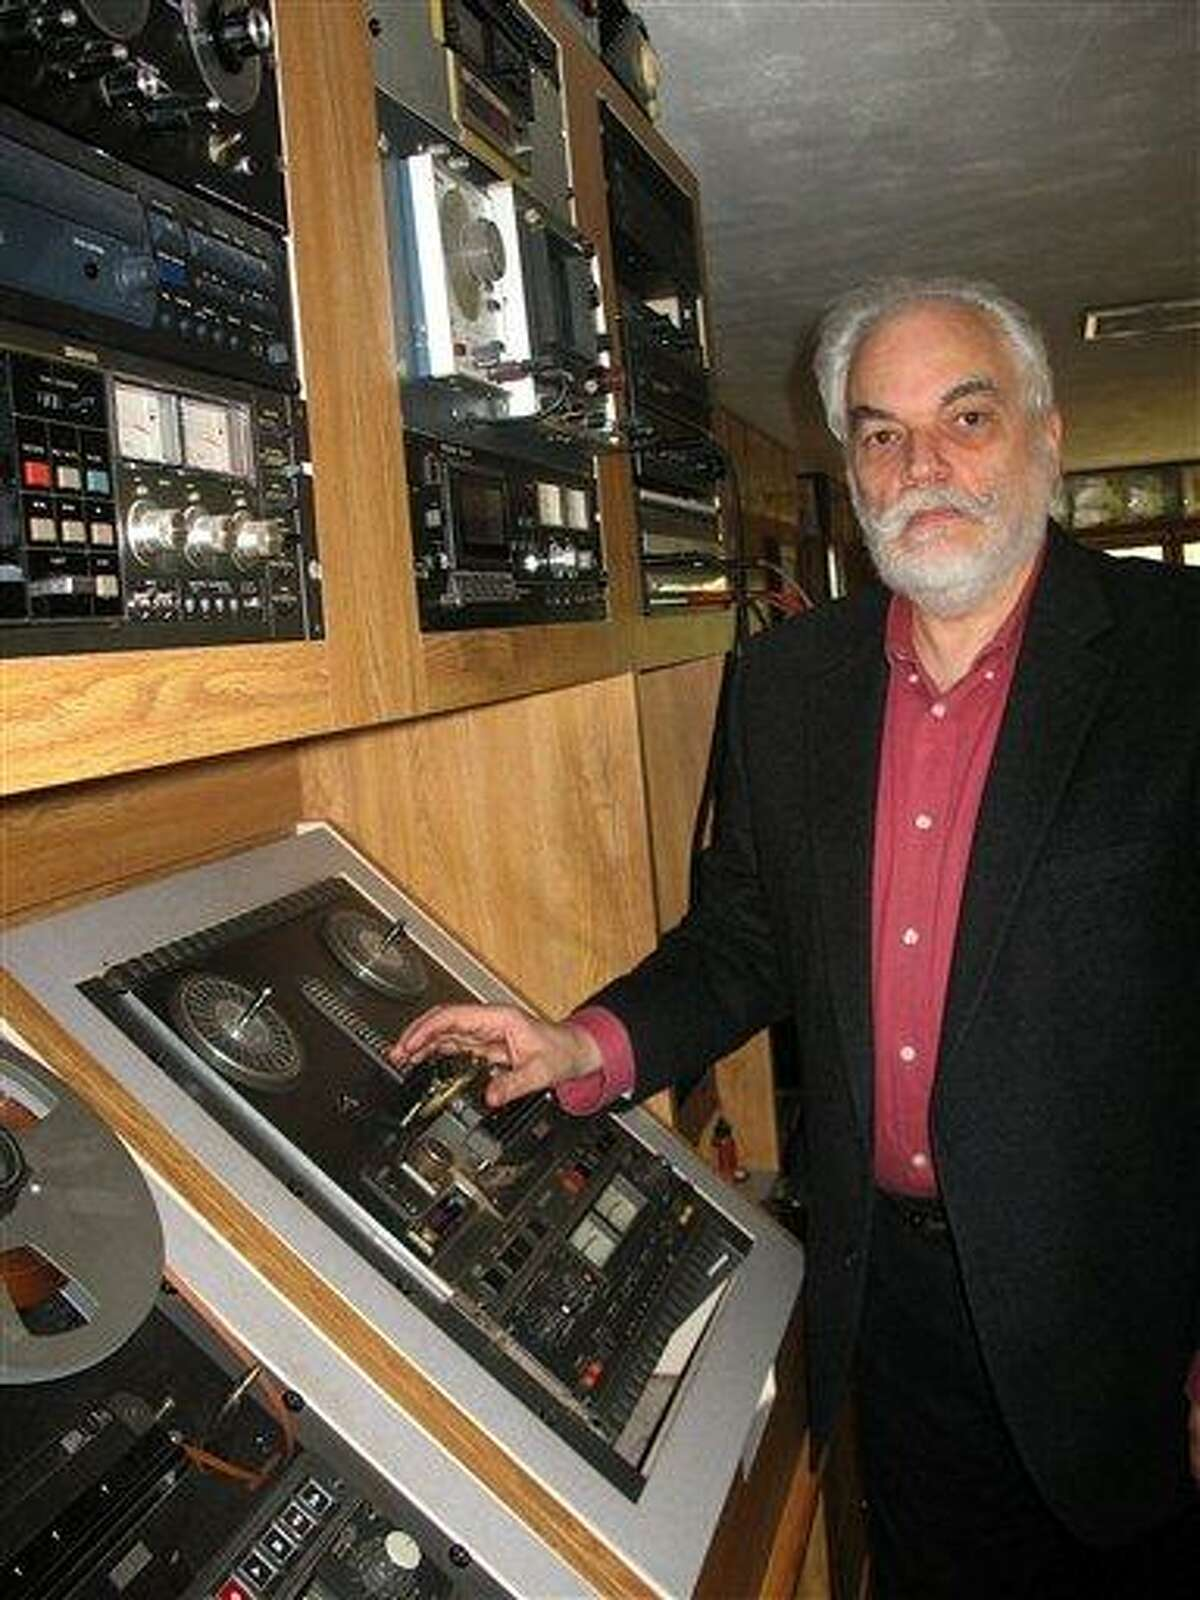 J. David Goldin, shows his radio collection April 30 in Sandy Hook, Conn. Goldin spotted on eBay a record he'd donated to the National Archive in the 1970s, setting off an investigation. Associated Press